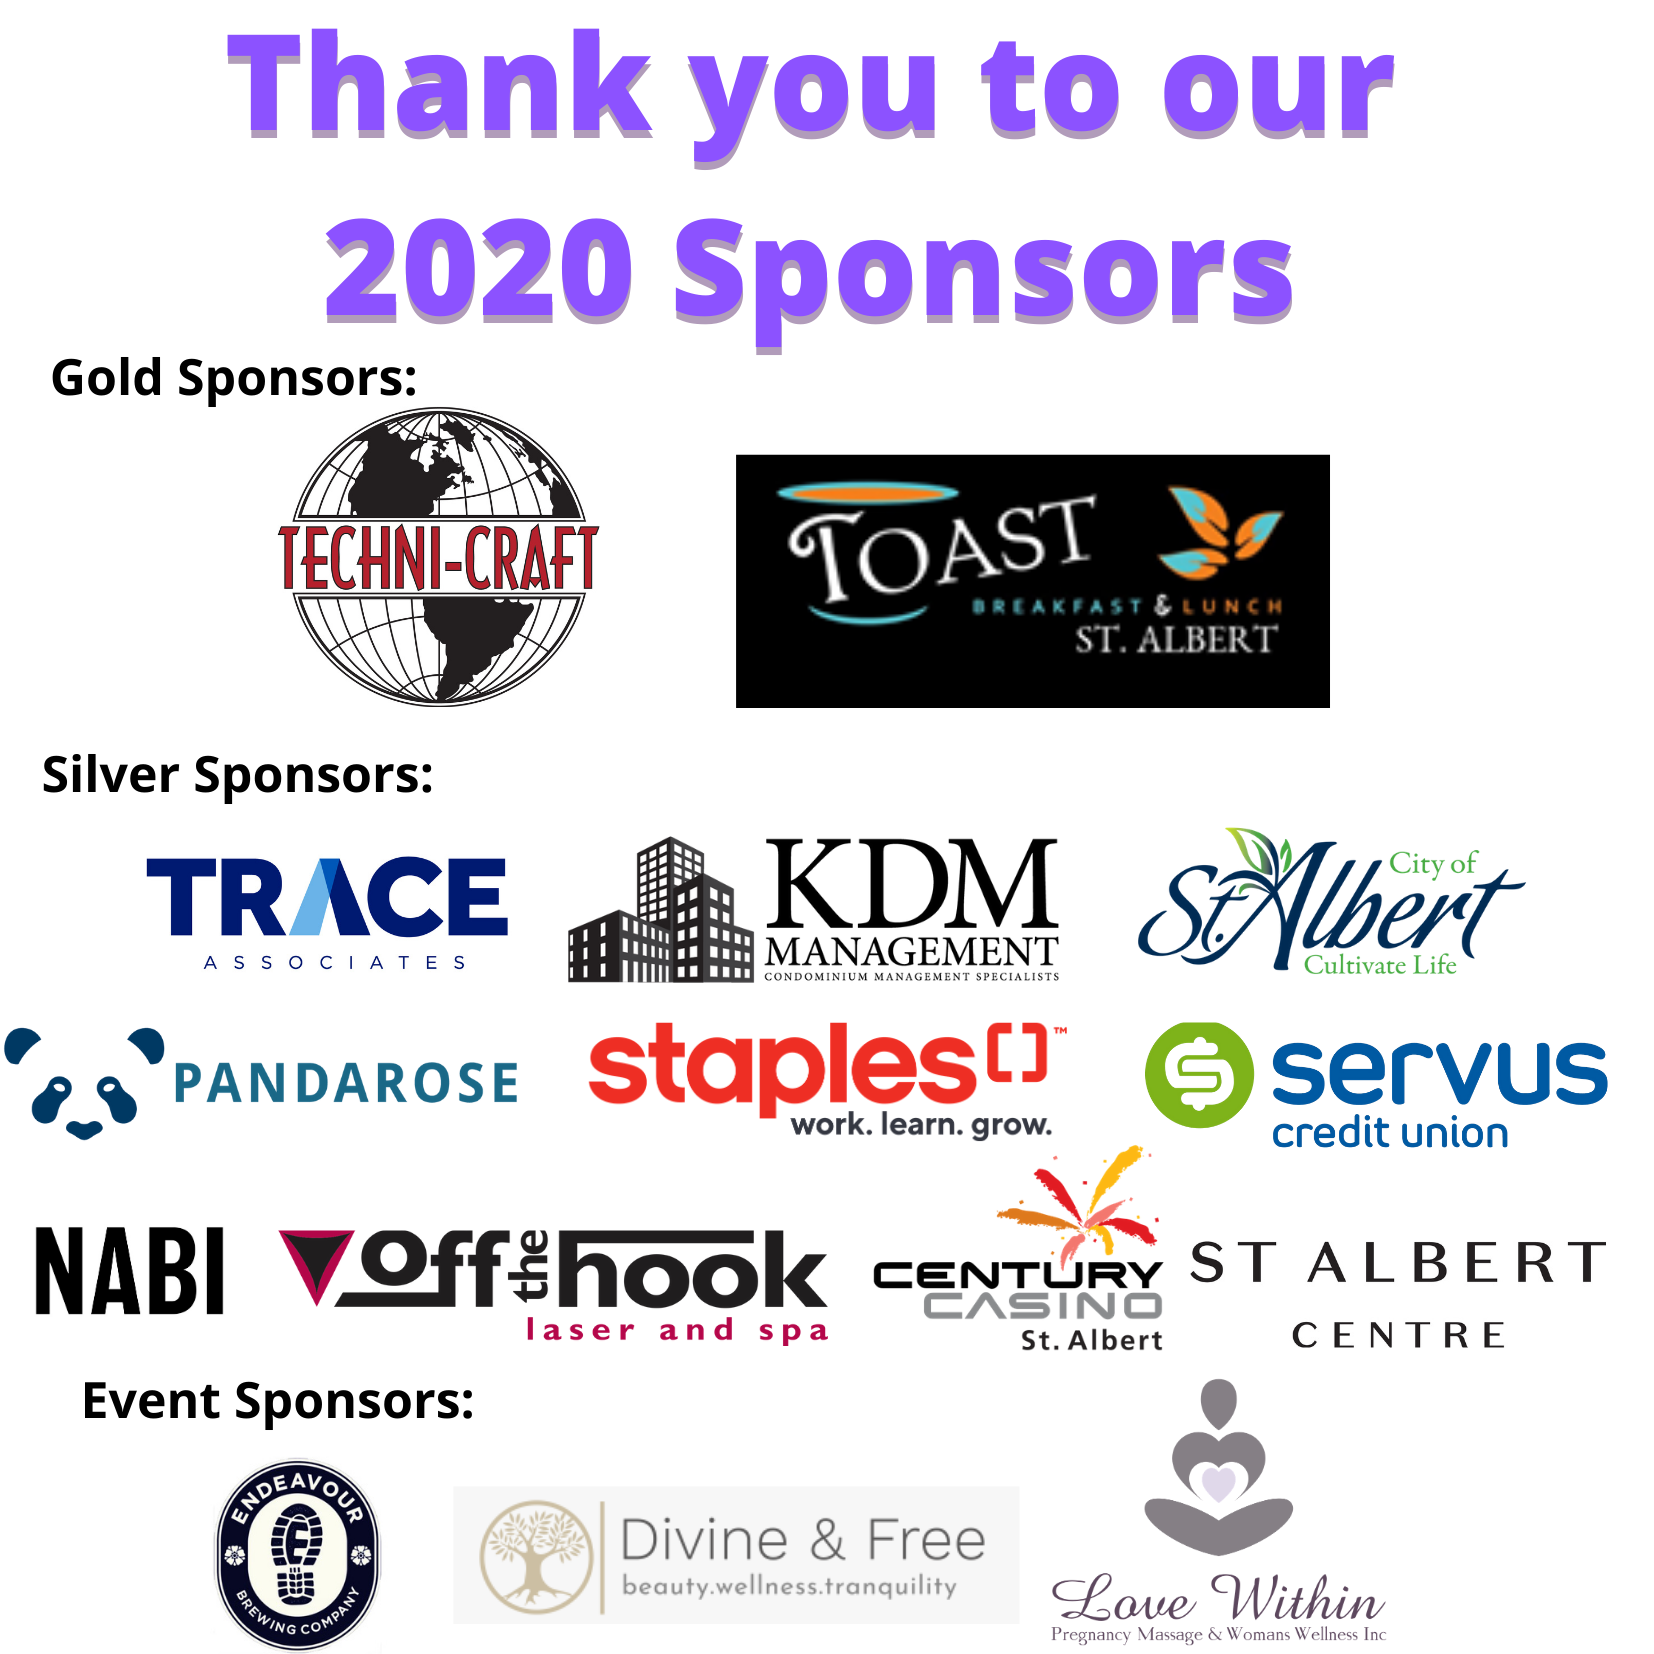 Thank you to our current sponsors Sept 22